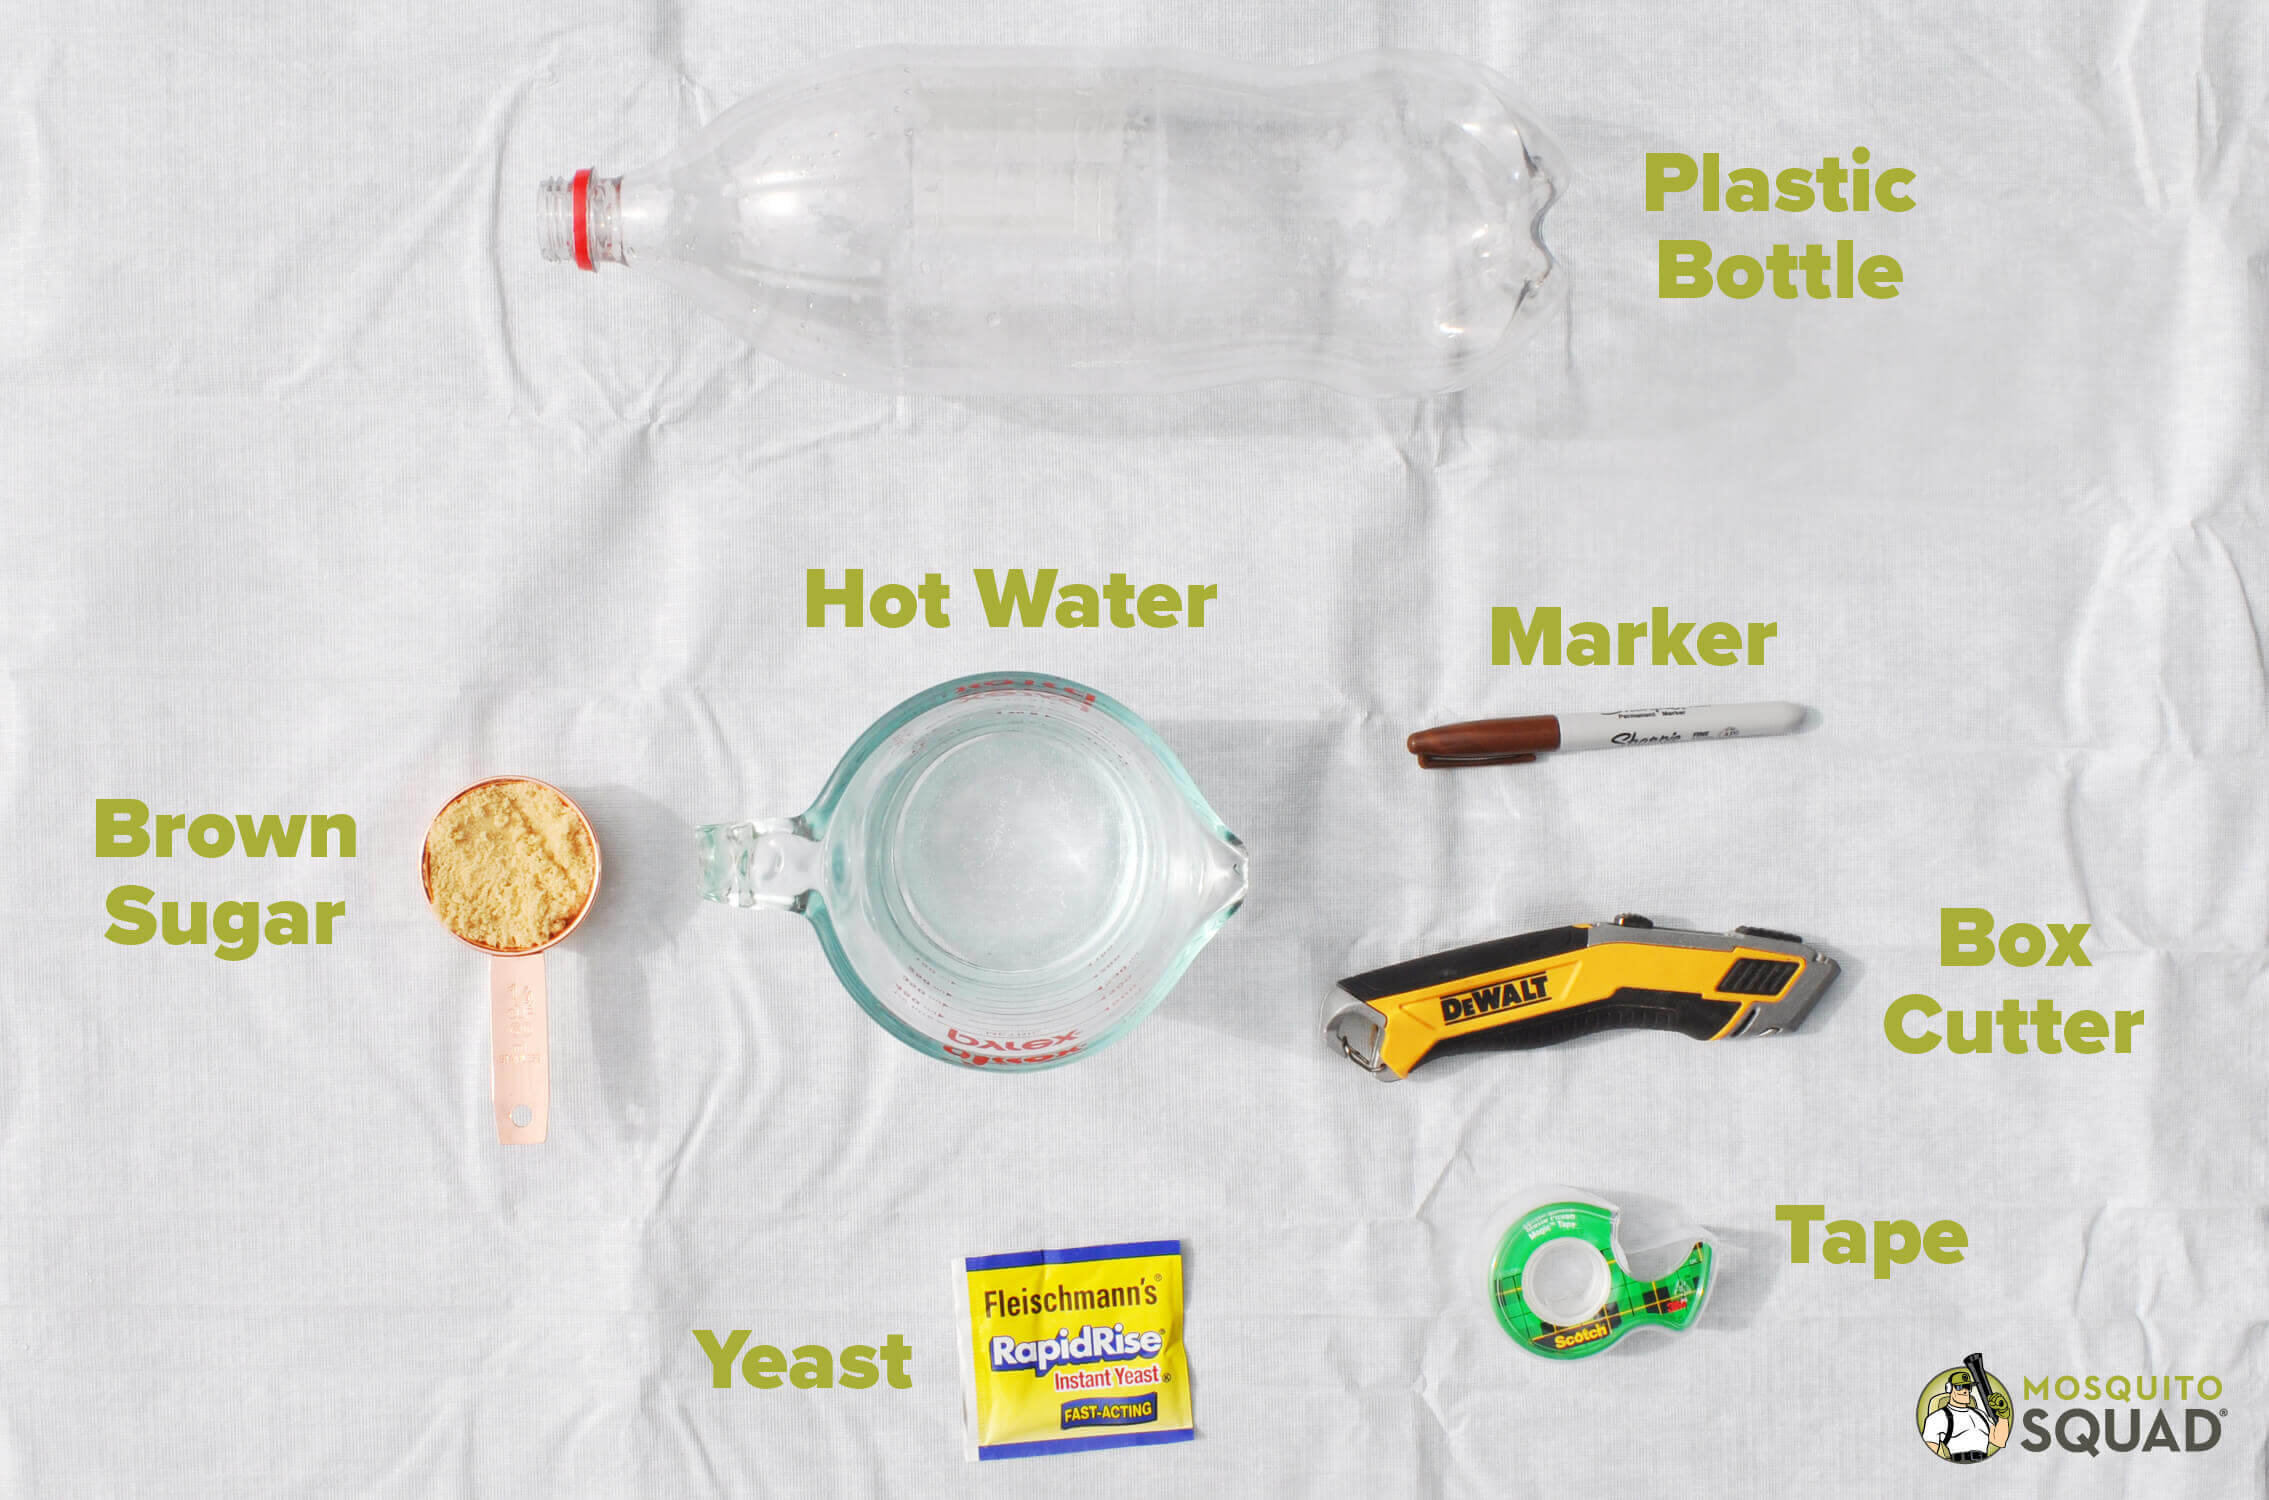 a plastic bottle, brown sugar, active yeast, box cutters, and a marker for a DIY mosquito trap